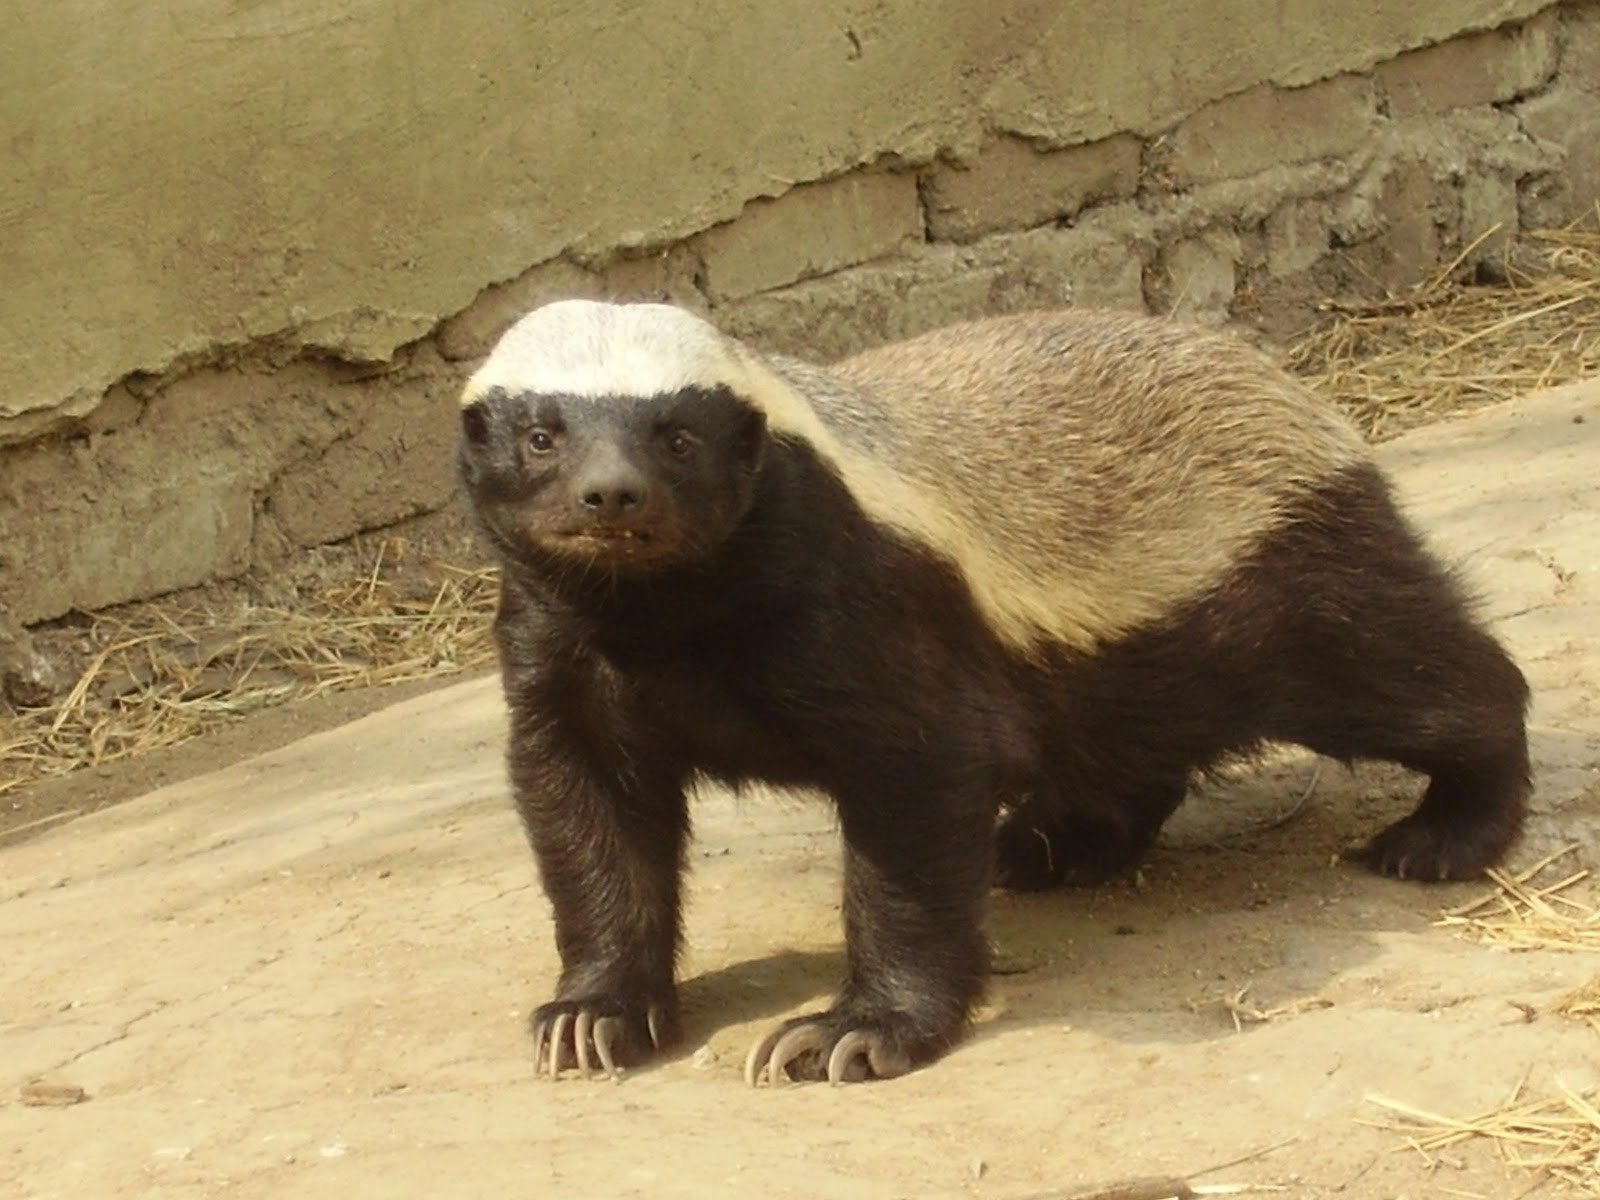 Honey badgers are mammals Honey badgers have claws Honey badgers 1600x1200